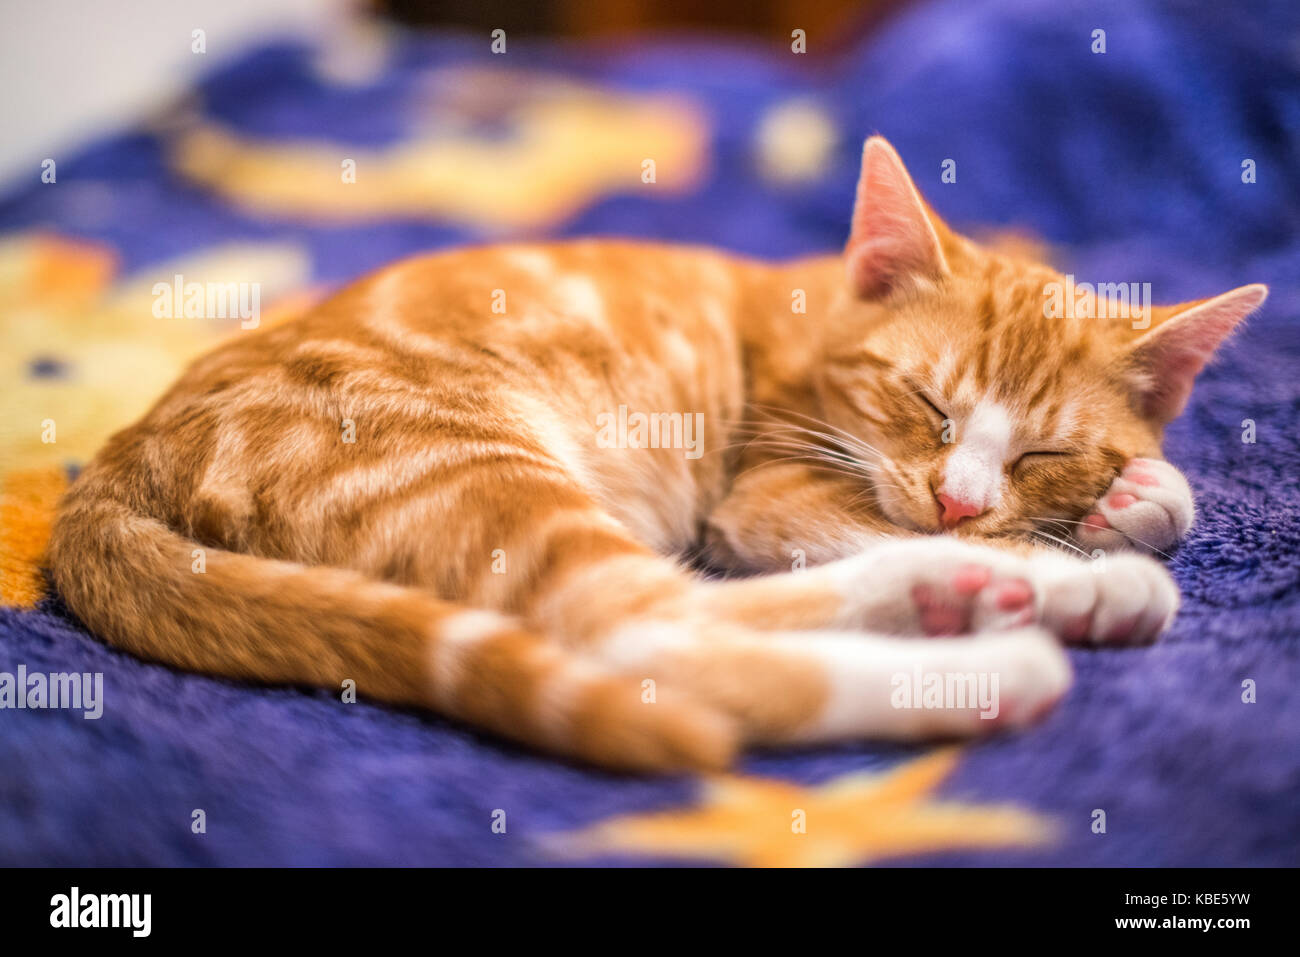 A young cat sleeping on a couch at home, sweet and beautiful. - Stock Image